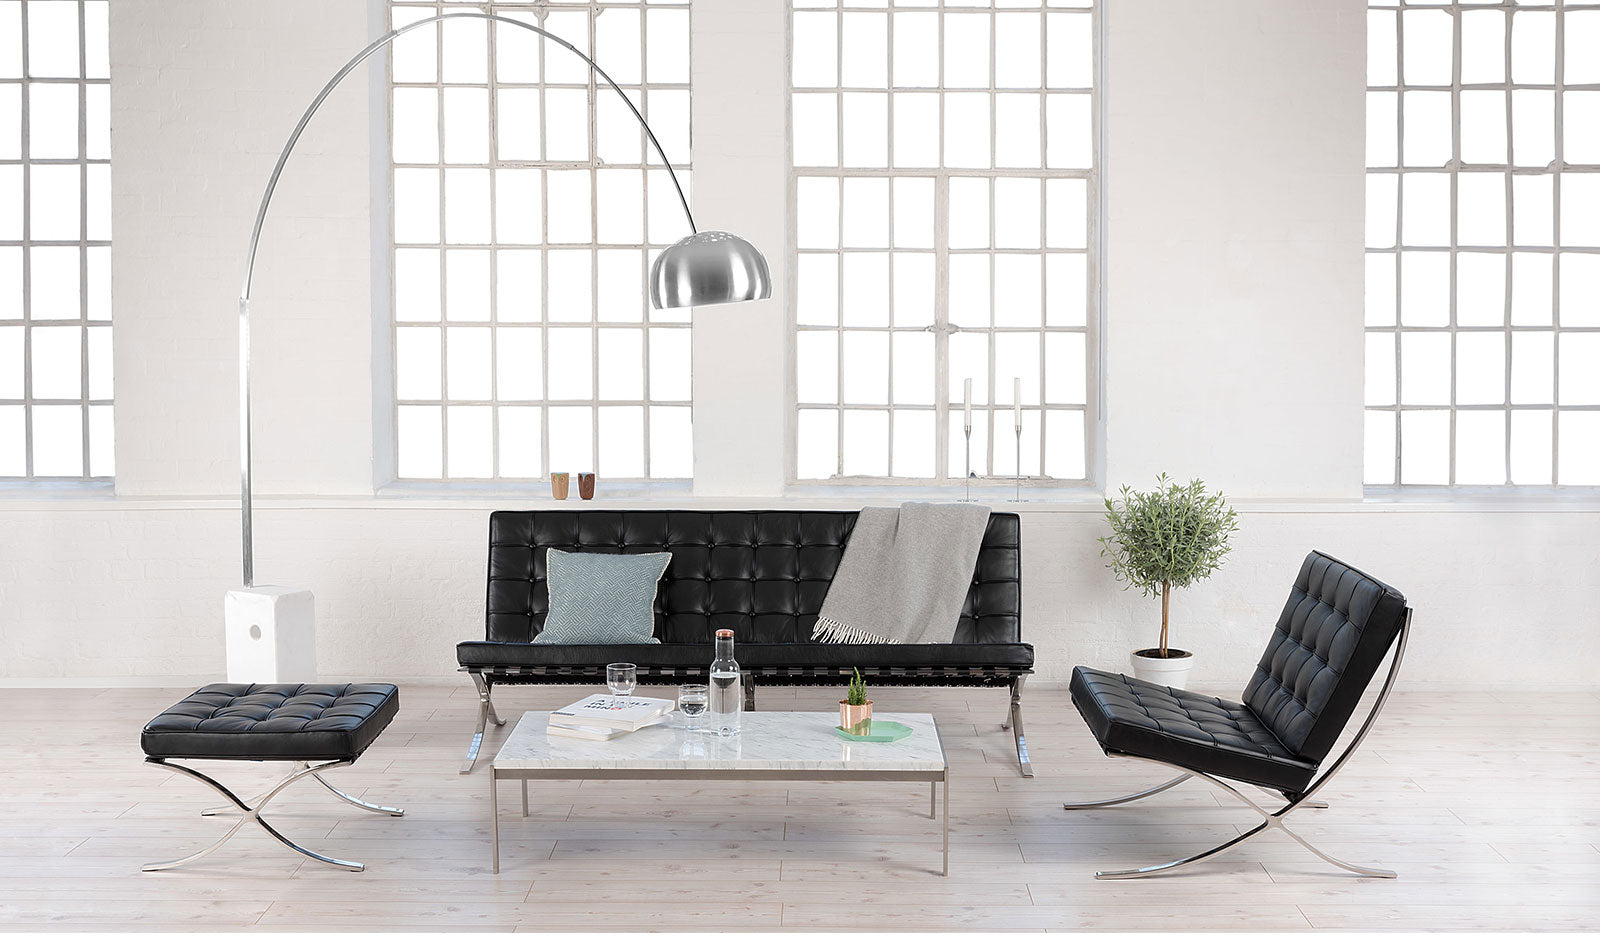 barcelona chair replica pavilion chair replica exposition chair. Black Bedroom Furniture Sets. Home Design Ideas